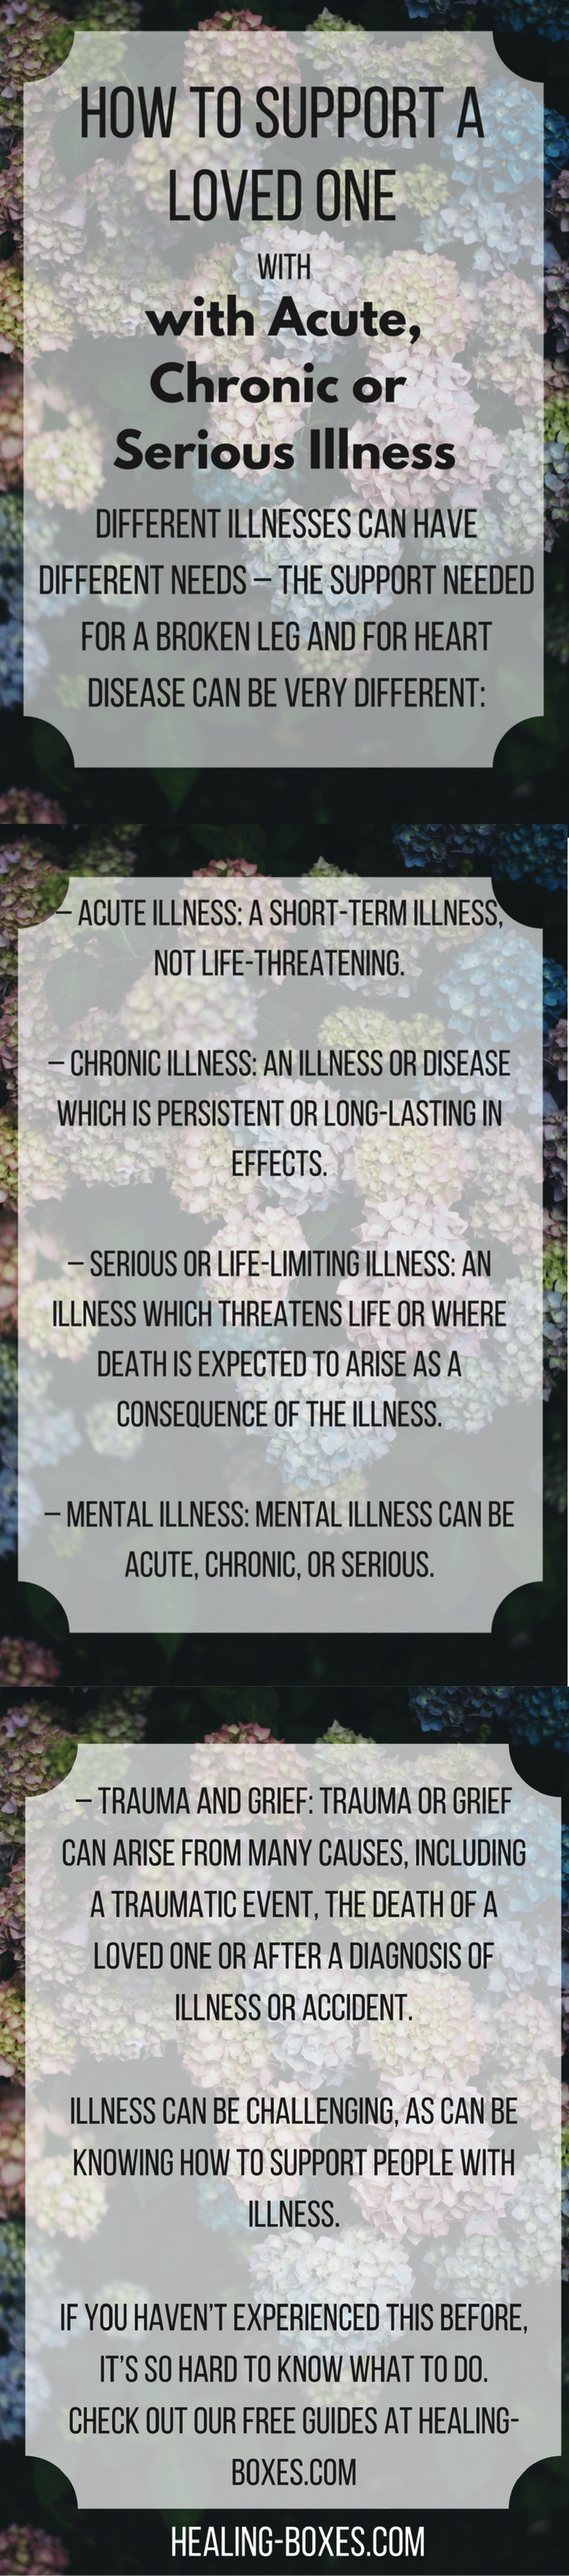 Pinterest Graphic: text is the first paragraphs of article on top of image of hydrangeas: Illness is challenging, and so is knowing how to support people with illness. If you haven't experienced this before, it's so hard to know what to do. Different illnesses can have different needs – the support needed for a broken leg and for heart disease can be very different. – Acute illness: a short-term illness, not life-threatening. – Chronic illness: an illness or diseases which is persistent or long-lasting in it's effects. – Serious or life limiting illness: an illness which threatens life or where death is expected to arise as a consequence of the illness. – Mental illness: mental illness can be acute, chronic, or serious. – Trauma and grief: trauma or grief can arise from many causes, including a traumatic event, the death of a loved one or after a diagnosis of illness or accident.